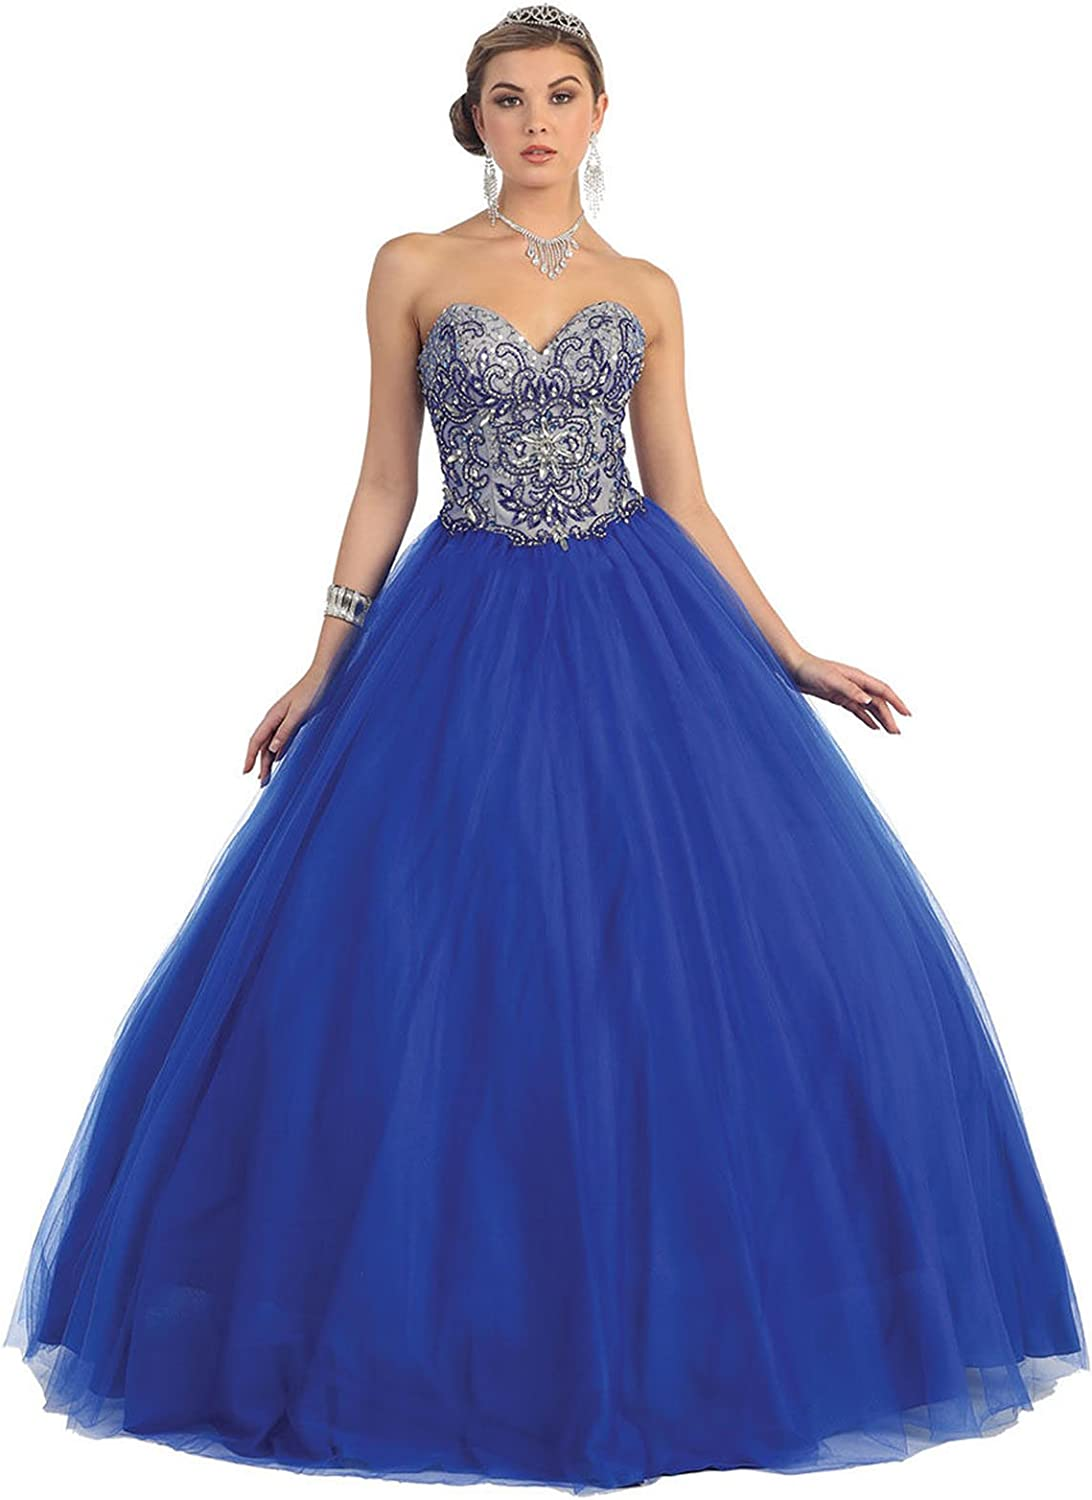 Layla K LK38 Quinceanera Sweetheart Ball Gown